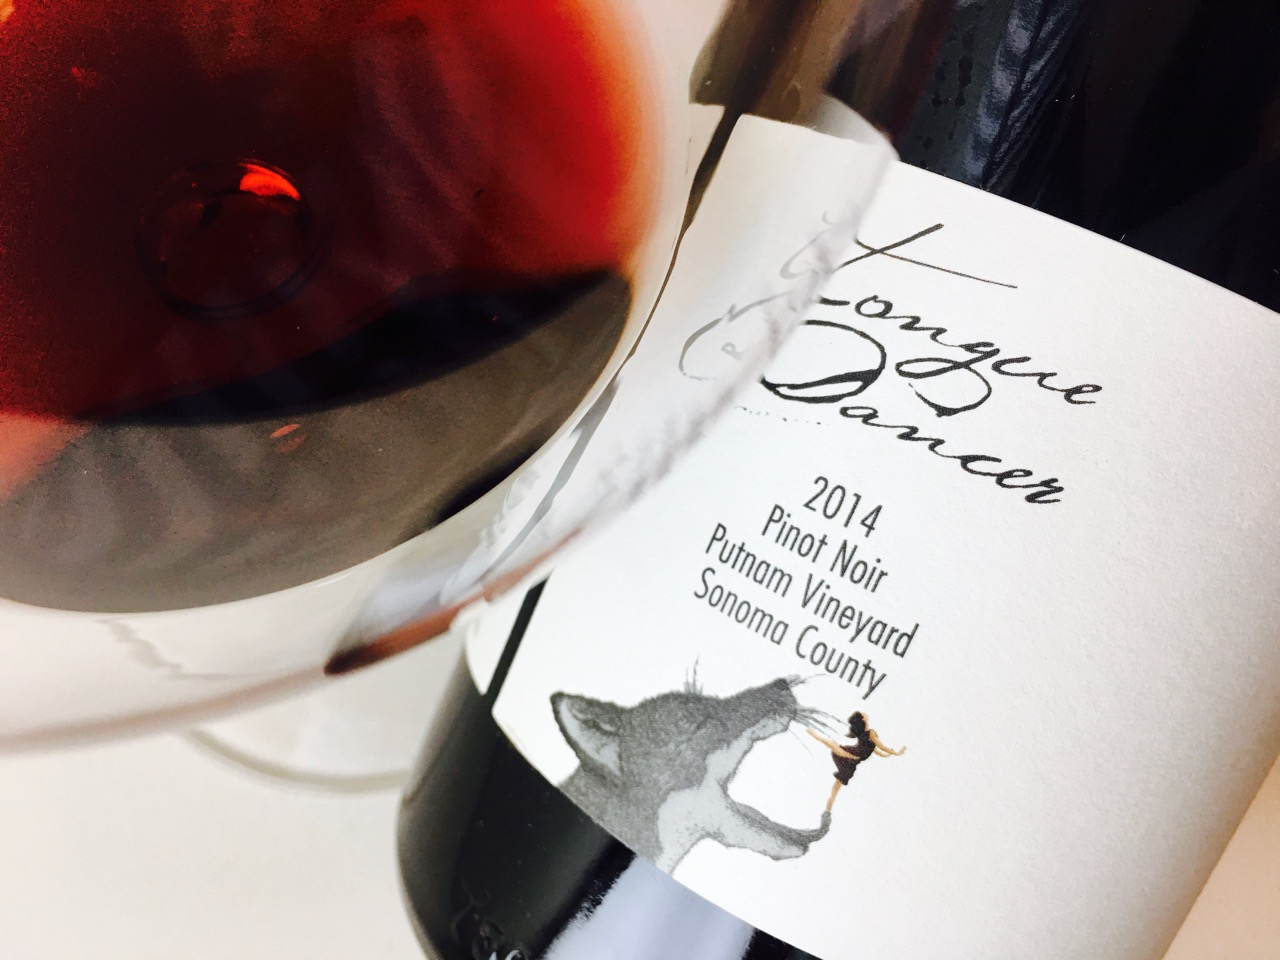 2014 Tongue Dancer Pinot Noir Pinot de Ville Sonoma County